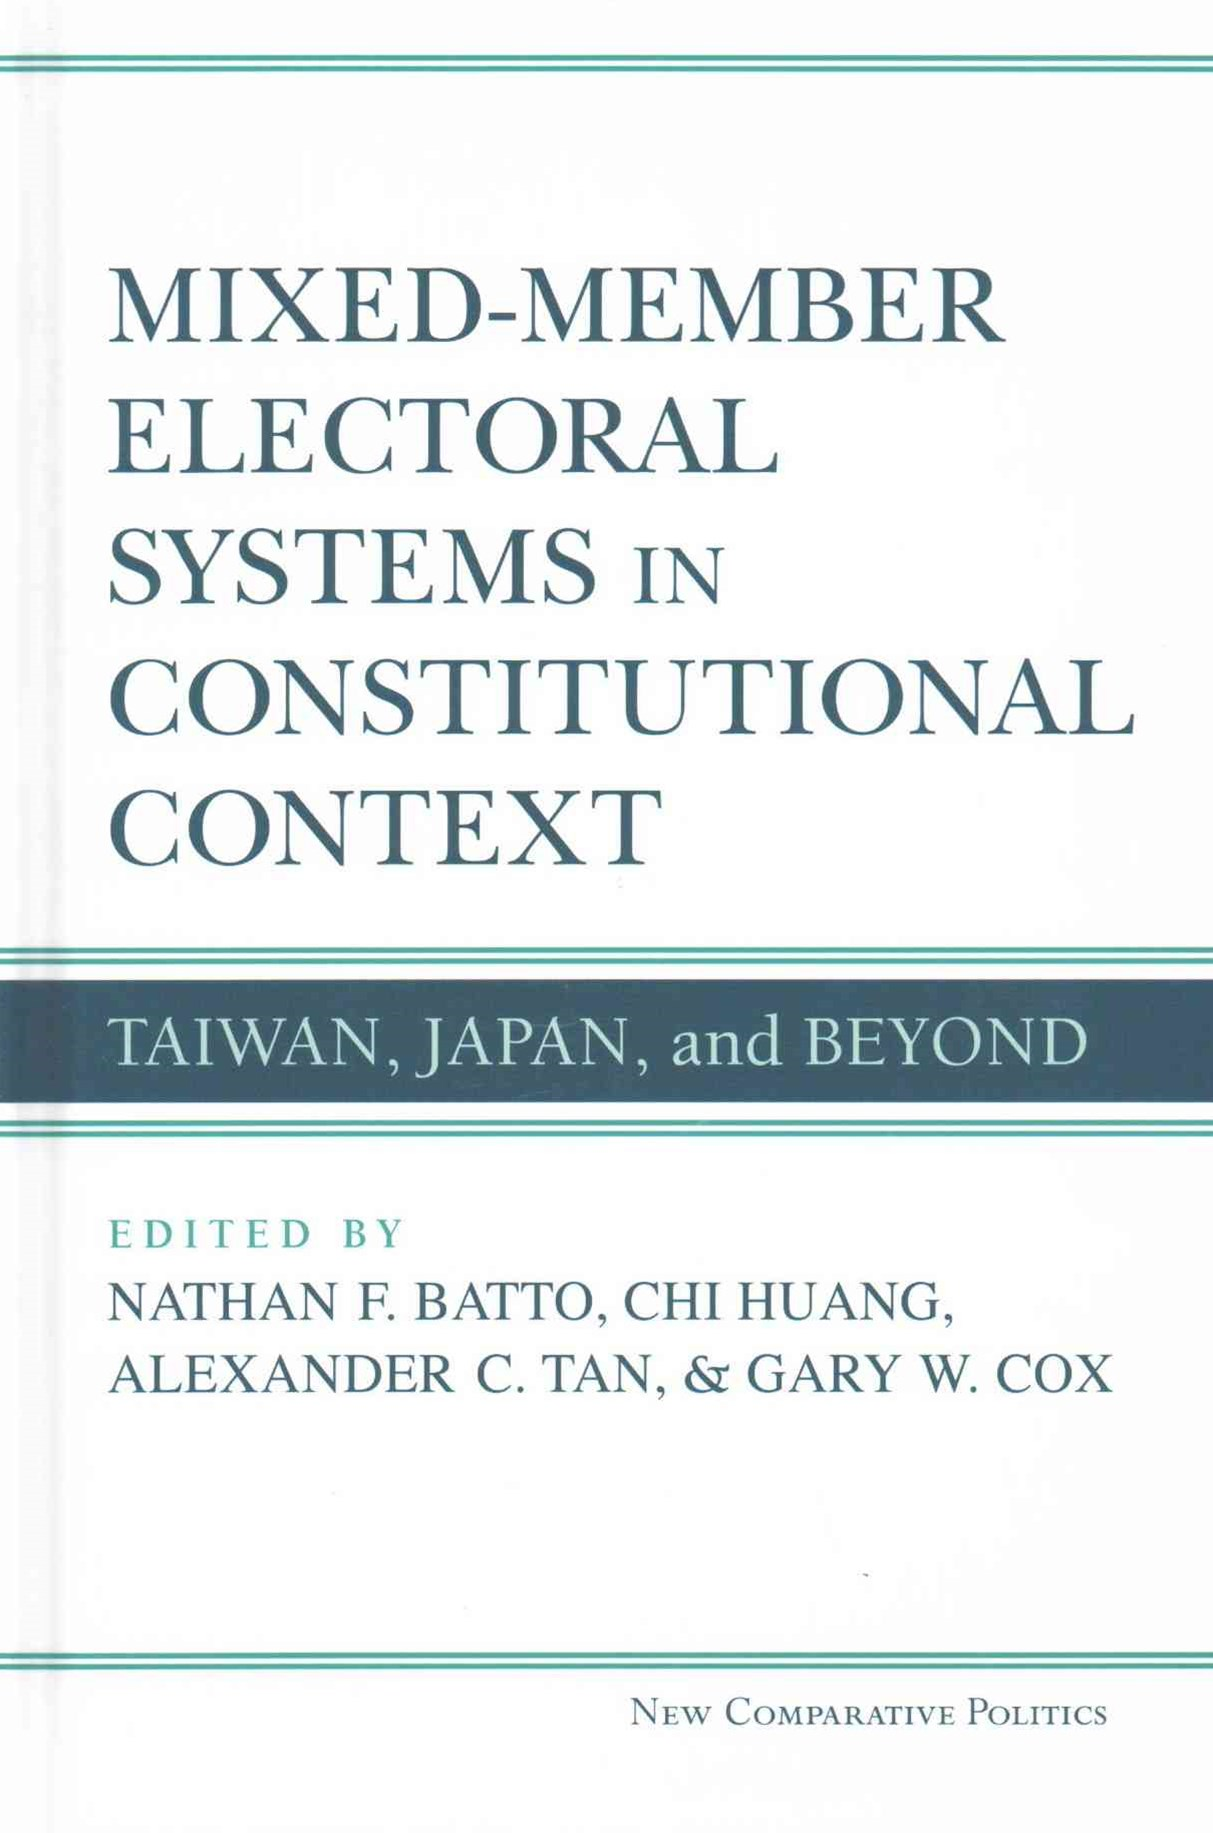 Mixed-Member Electoral Systems in Constitutional Context